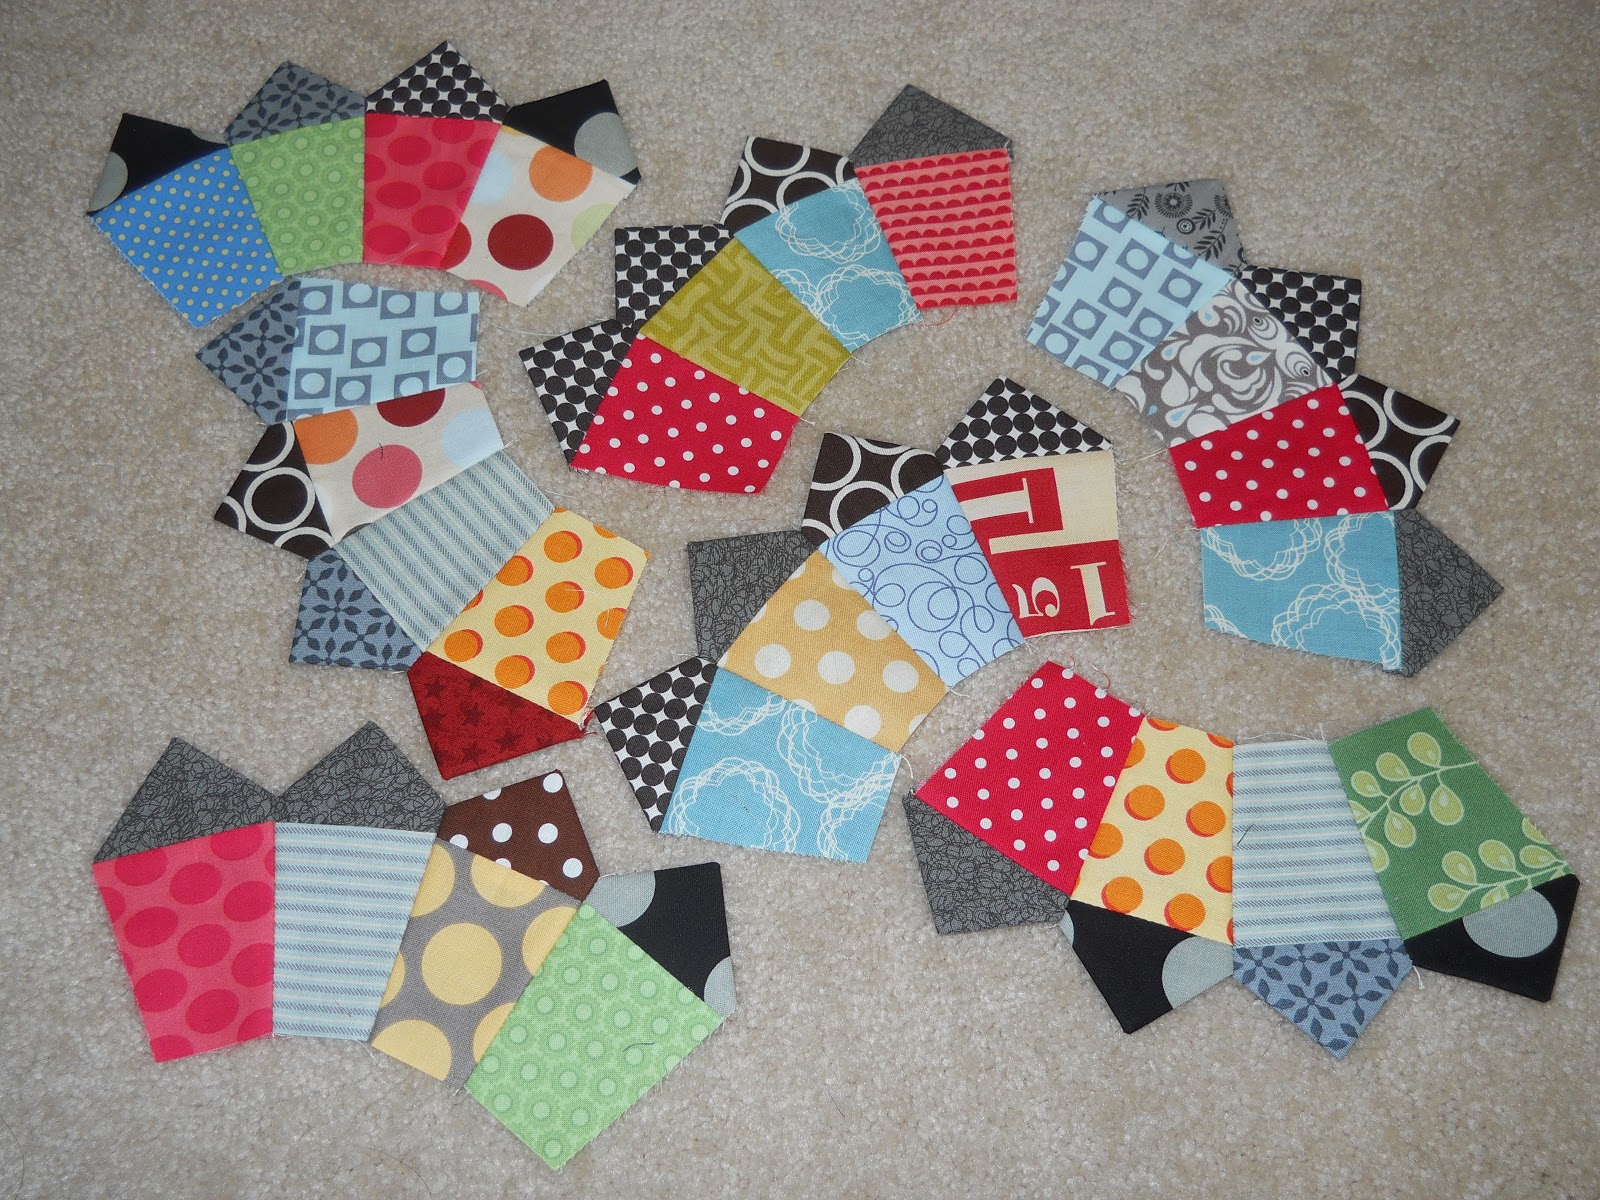 fan quilt along pattern part 2 color girl quilts by sharon mcconnell